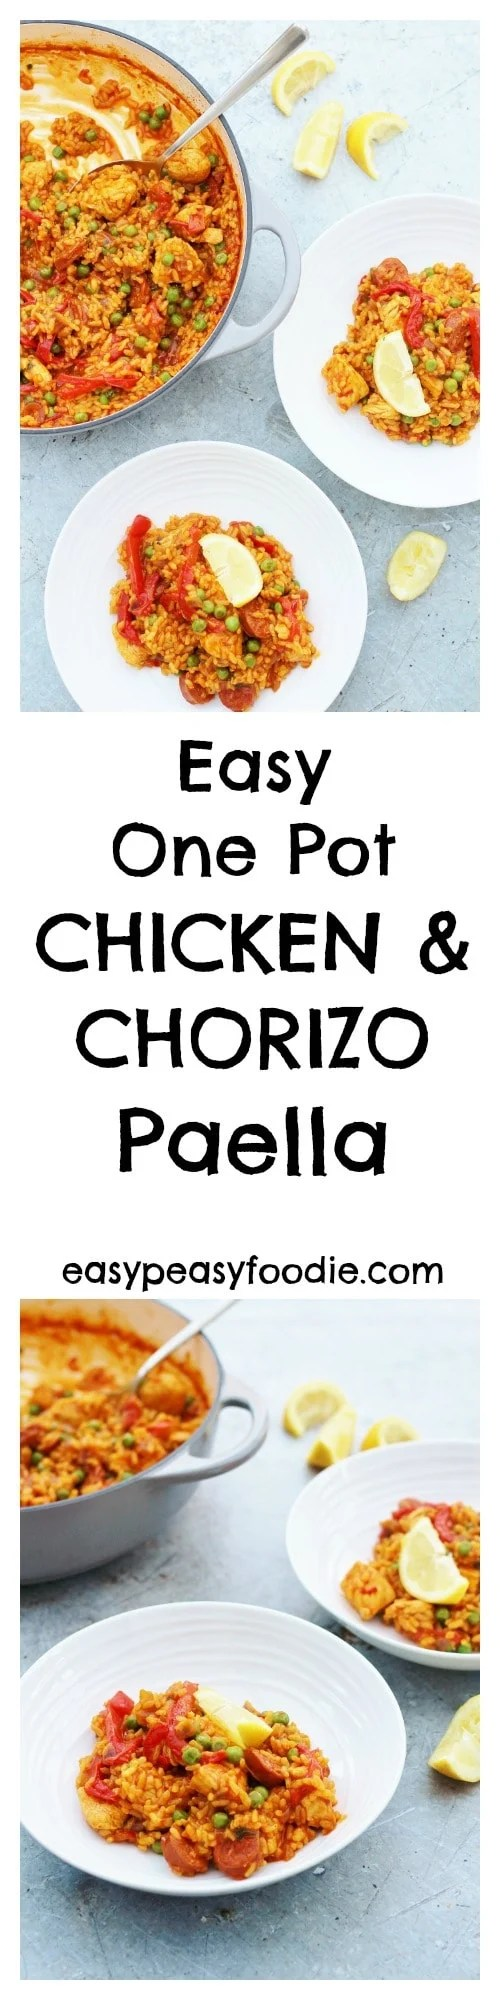 This easy one pot Chicken and Chorizo Paella is perfect for busy evenings when you have very little time to cook but still want a great tasting meal! #chicken #chorizo #paella #spanishfood #chickenpaella #chorizopaella #noseafoodpaella #onepot #easymeals #easydinners #midweekmeals #familydinners #easyentertaining #easypeasyfoodie